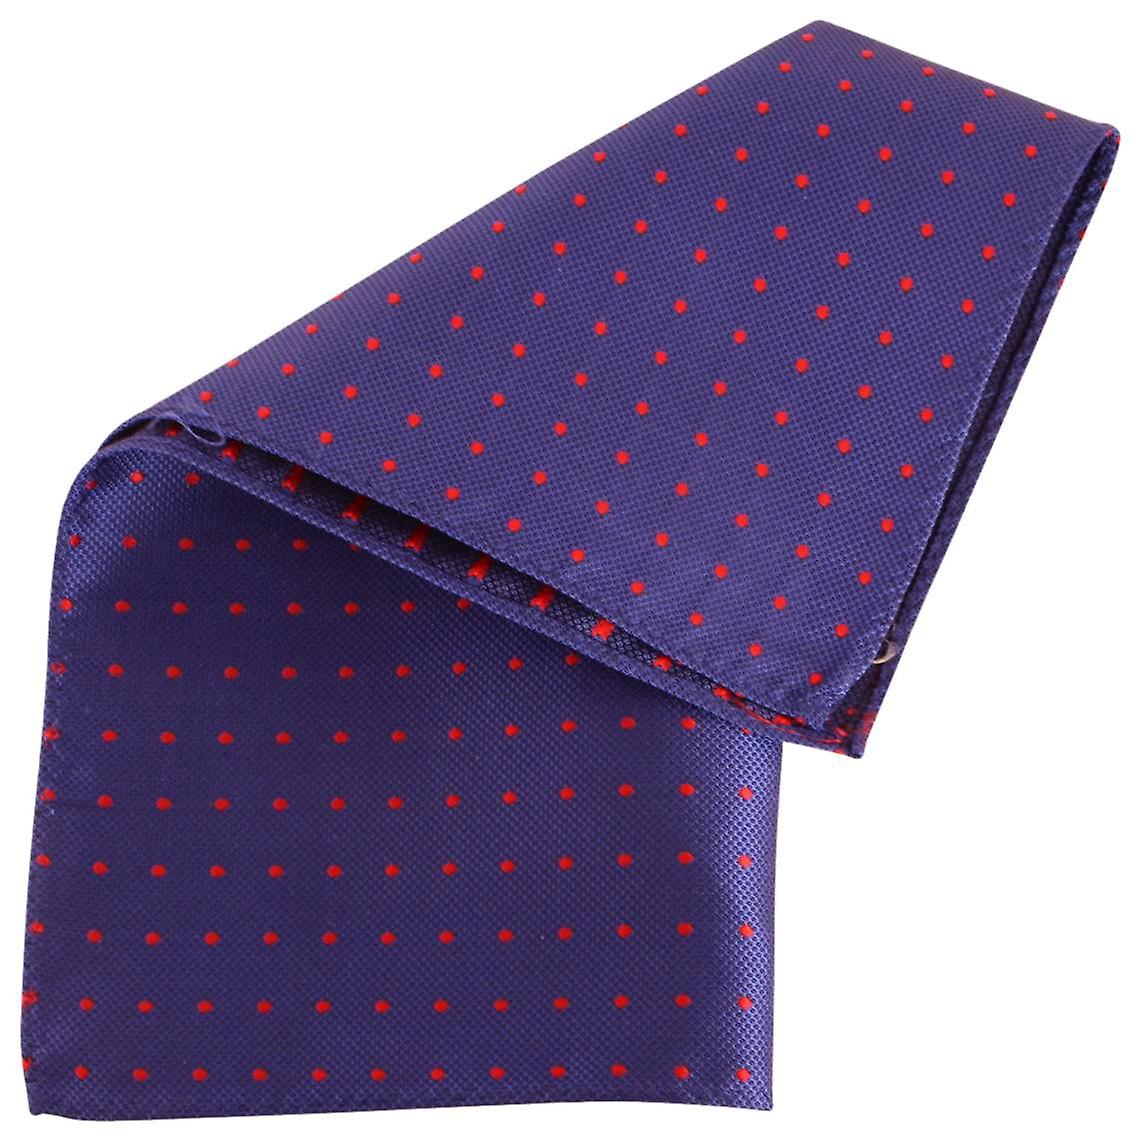 Knightsbridge Neckwear Spotted and Striped Silk Pocket Square - Blue/Red